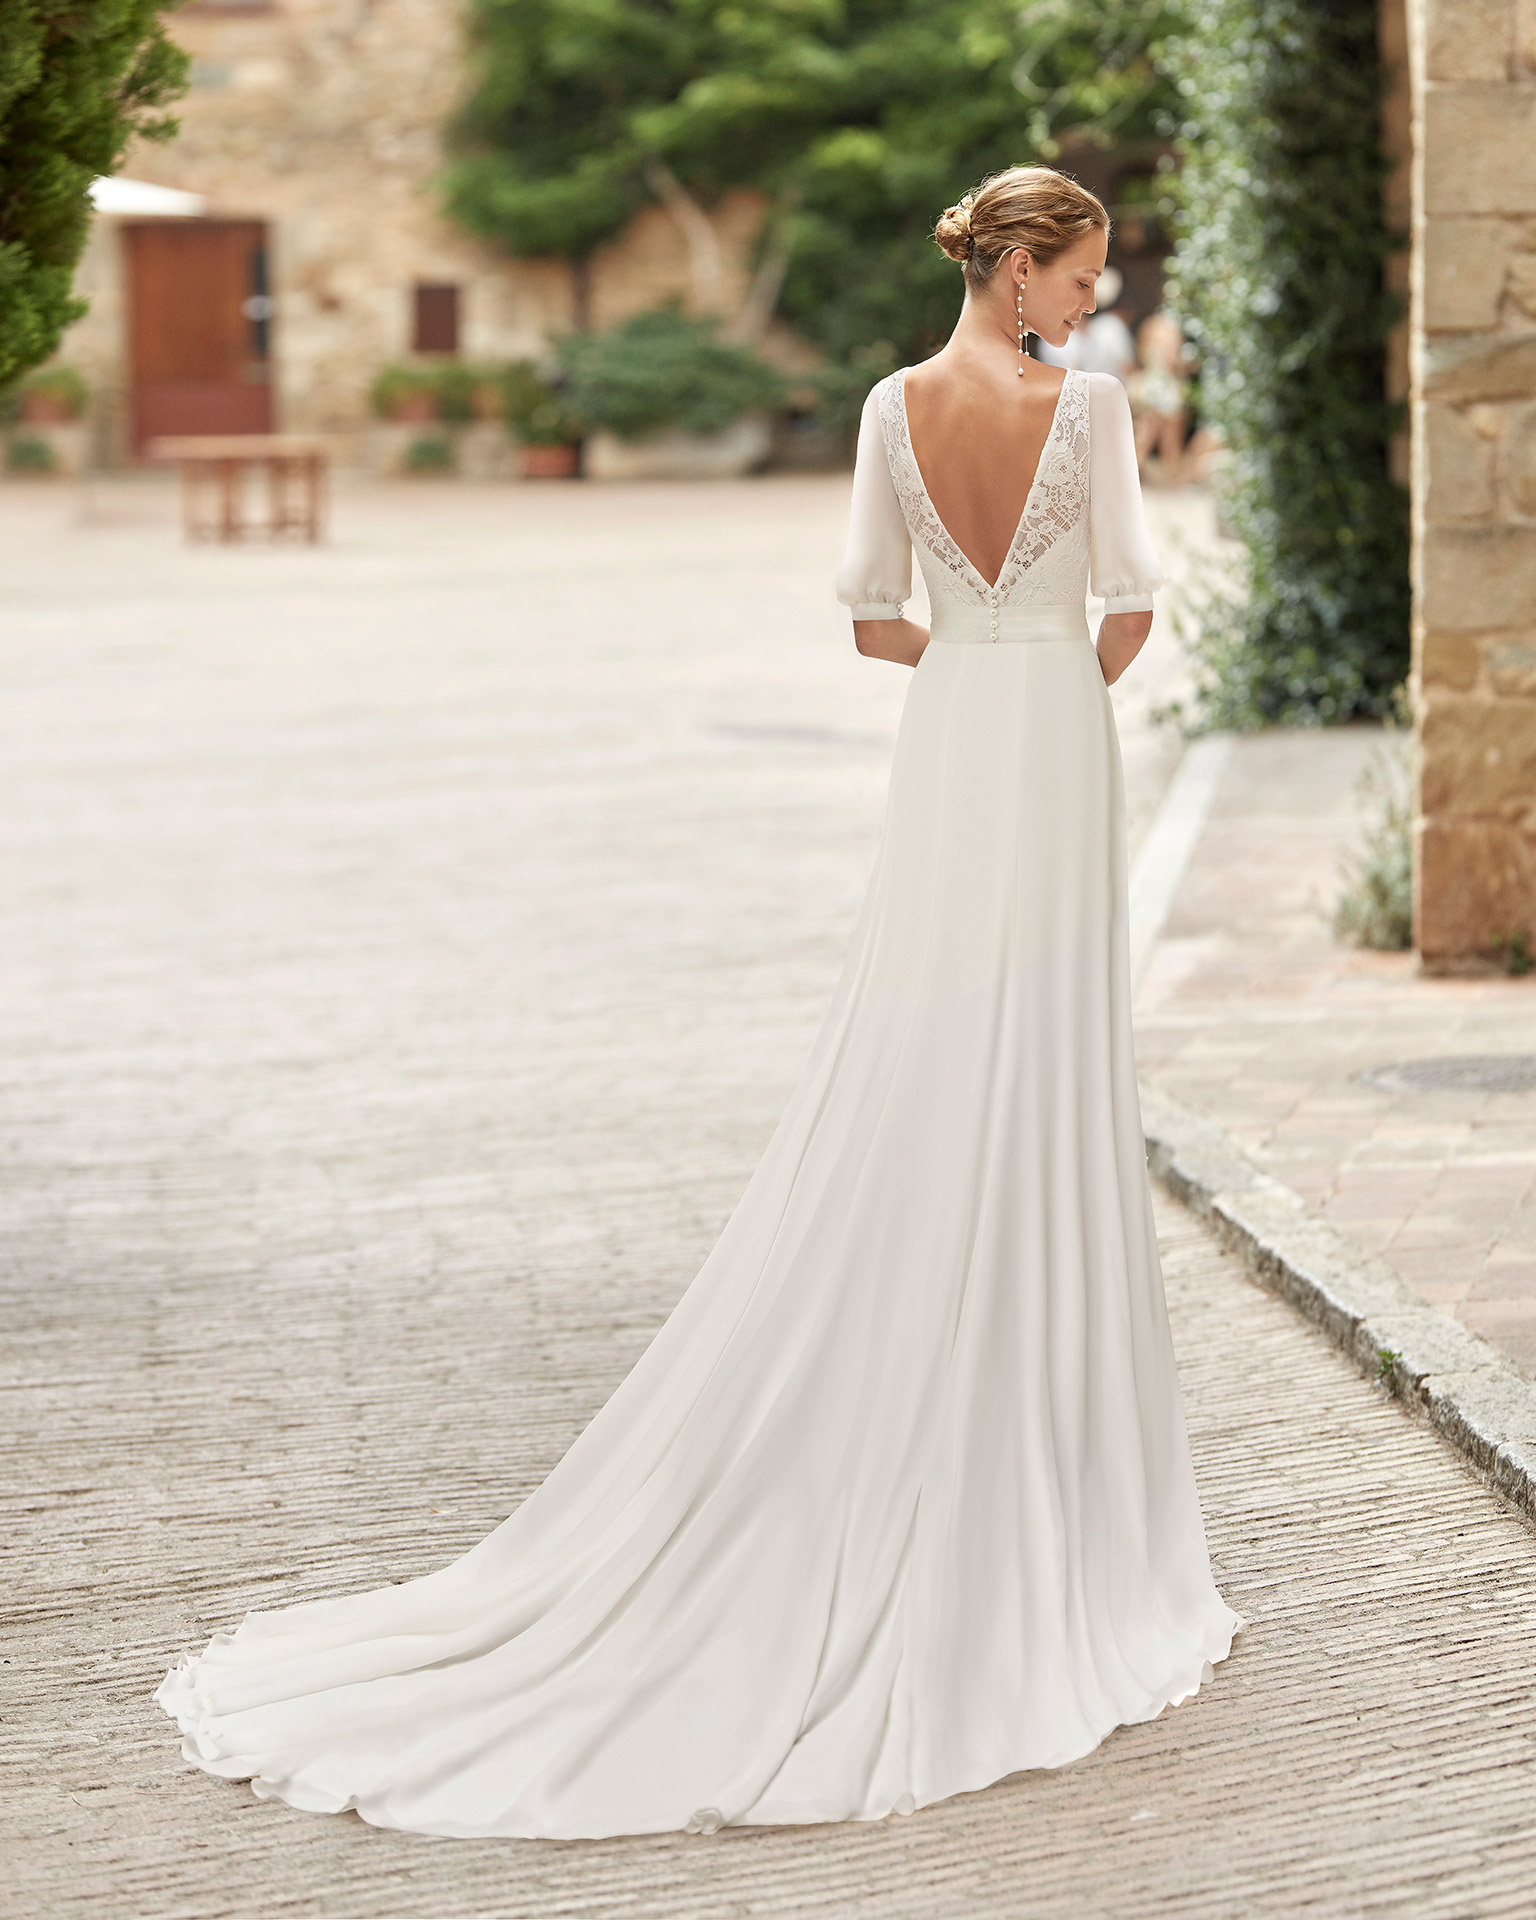 Boho-chic sheath-style wedding dress with a lace bodice; with a bateau neckline and V-back with three-quarter sleeves. Delicate Alma Novia model in georgette. 2022 ALMANOVIA Collection.